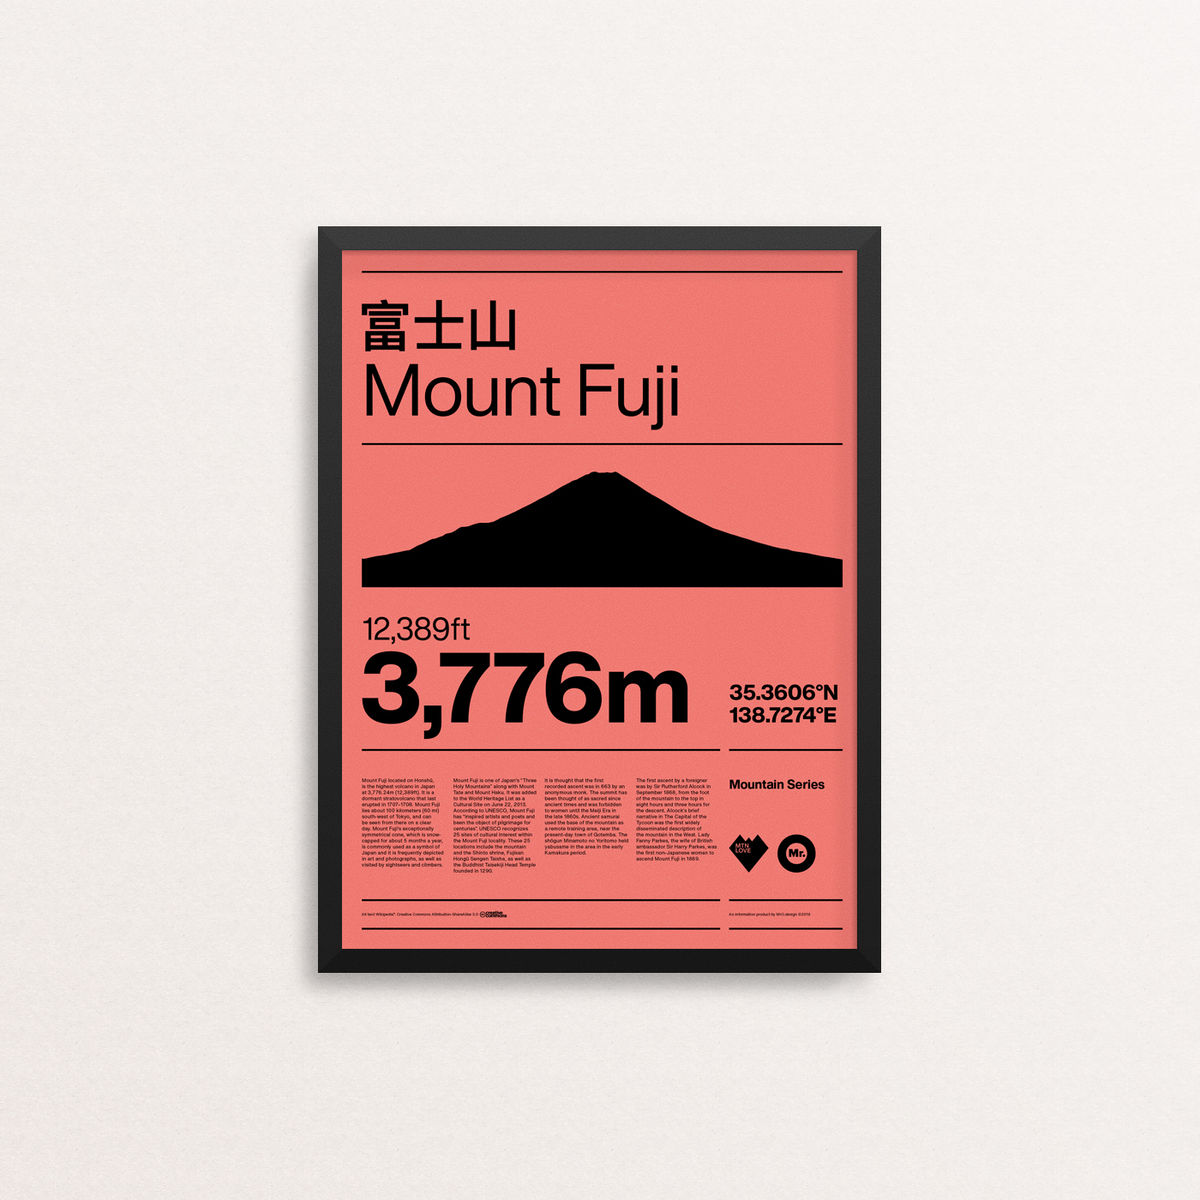 MTN Love - Mount Fuji - product images  of